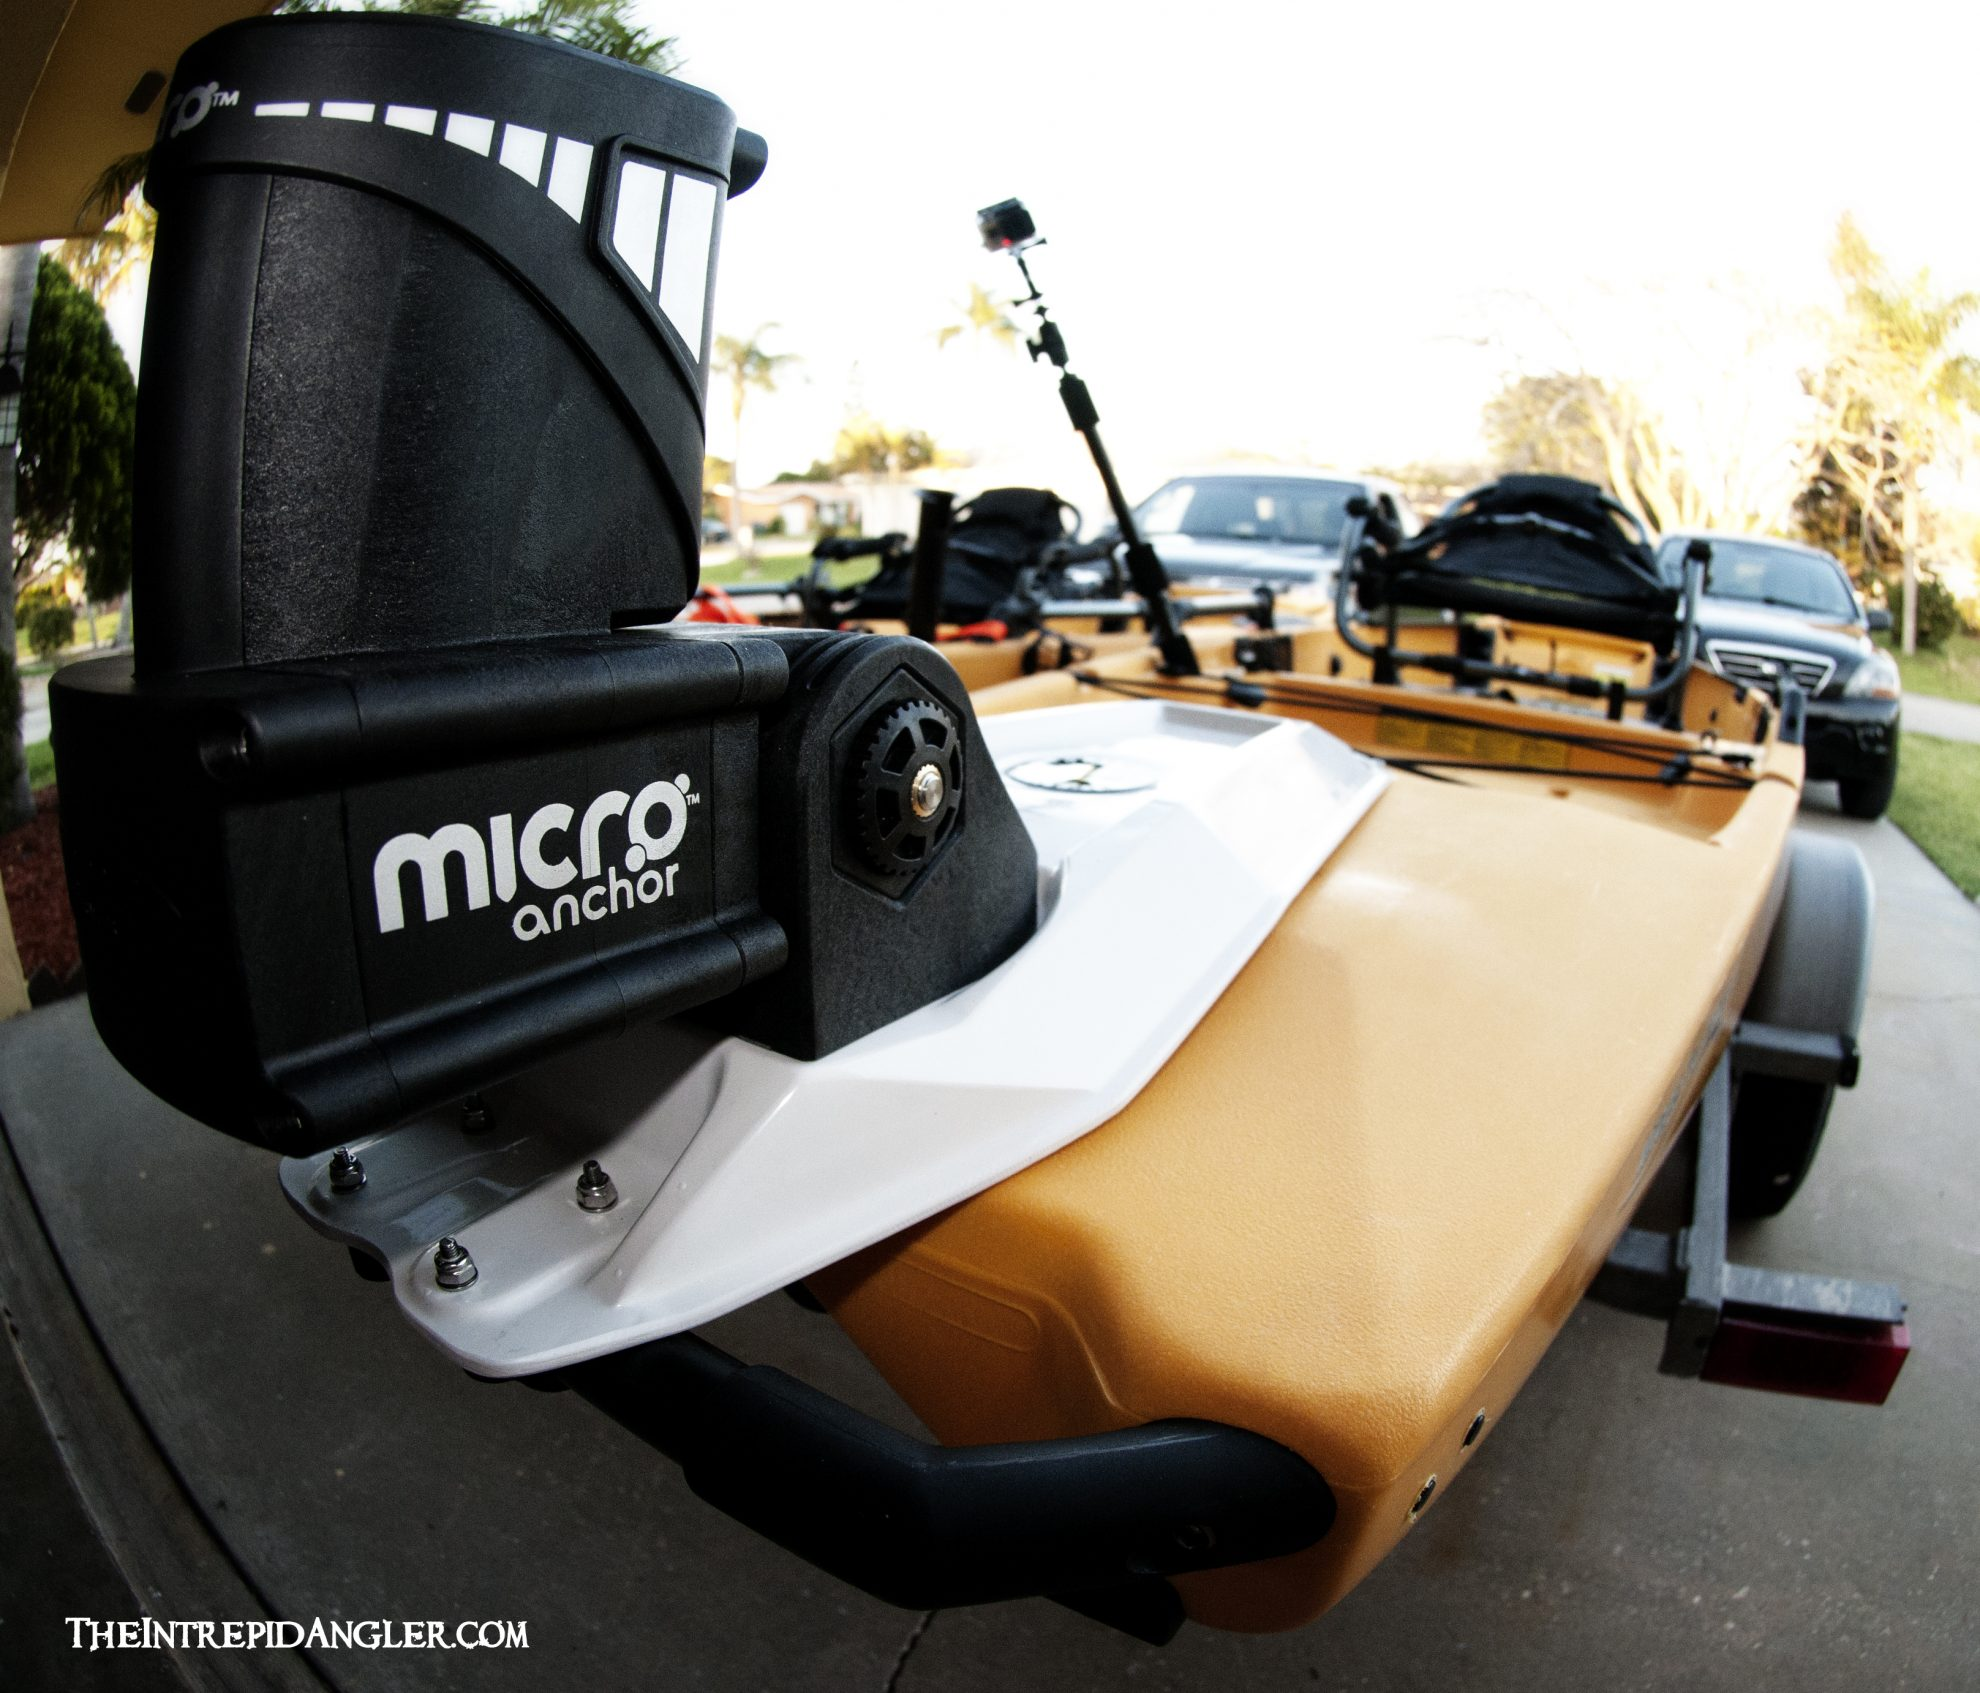 The Power Pole Micro Anchor System for Florida Inshore Kayak